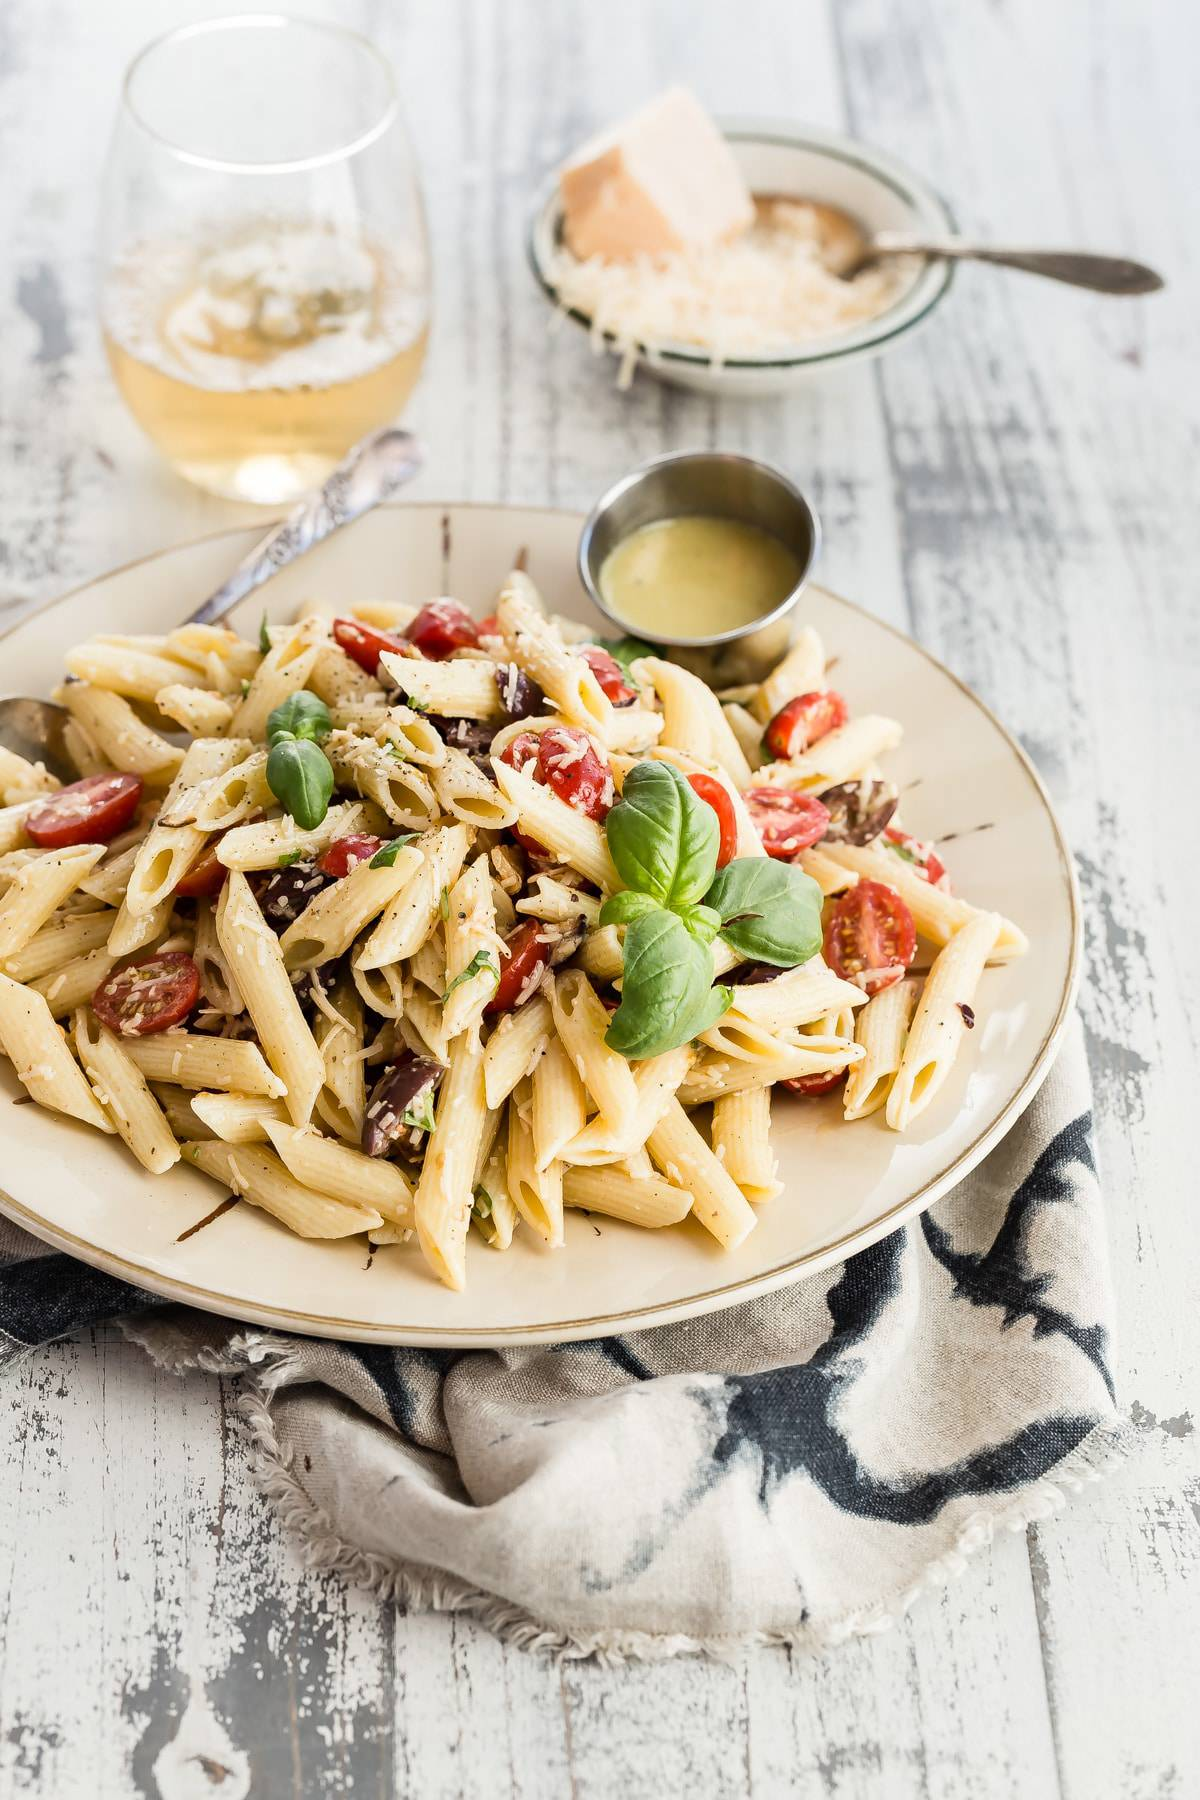 Penne Comodoro pasta salad with basil and tomatoes